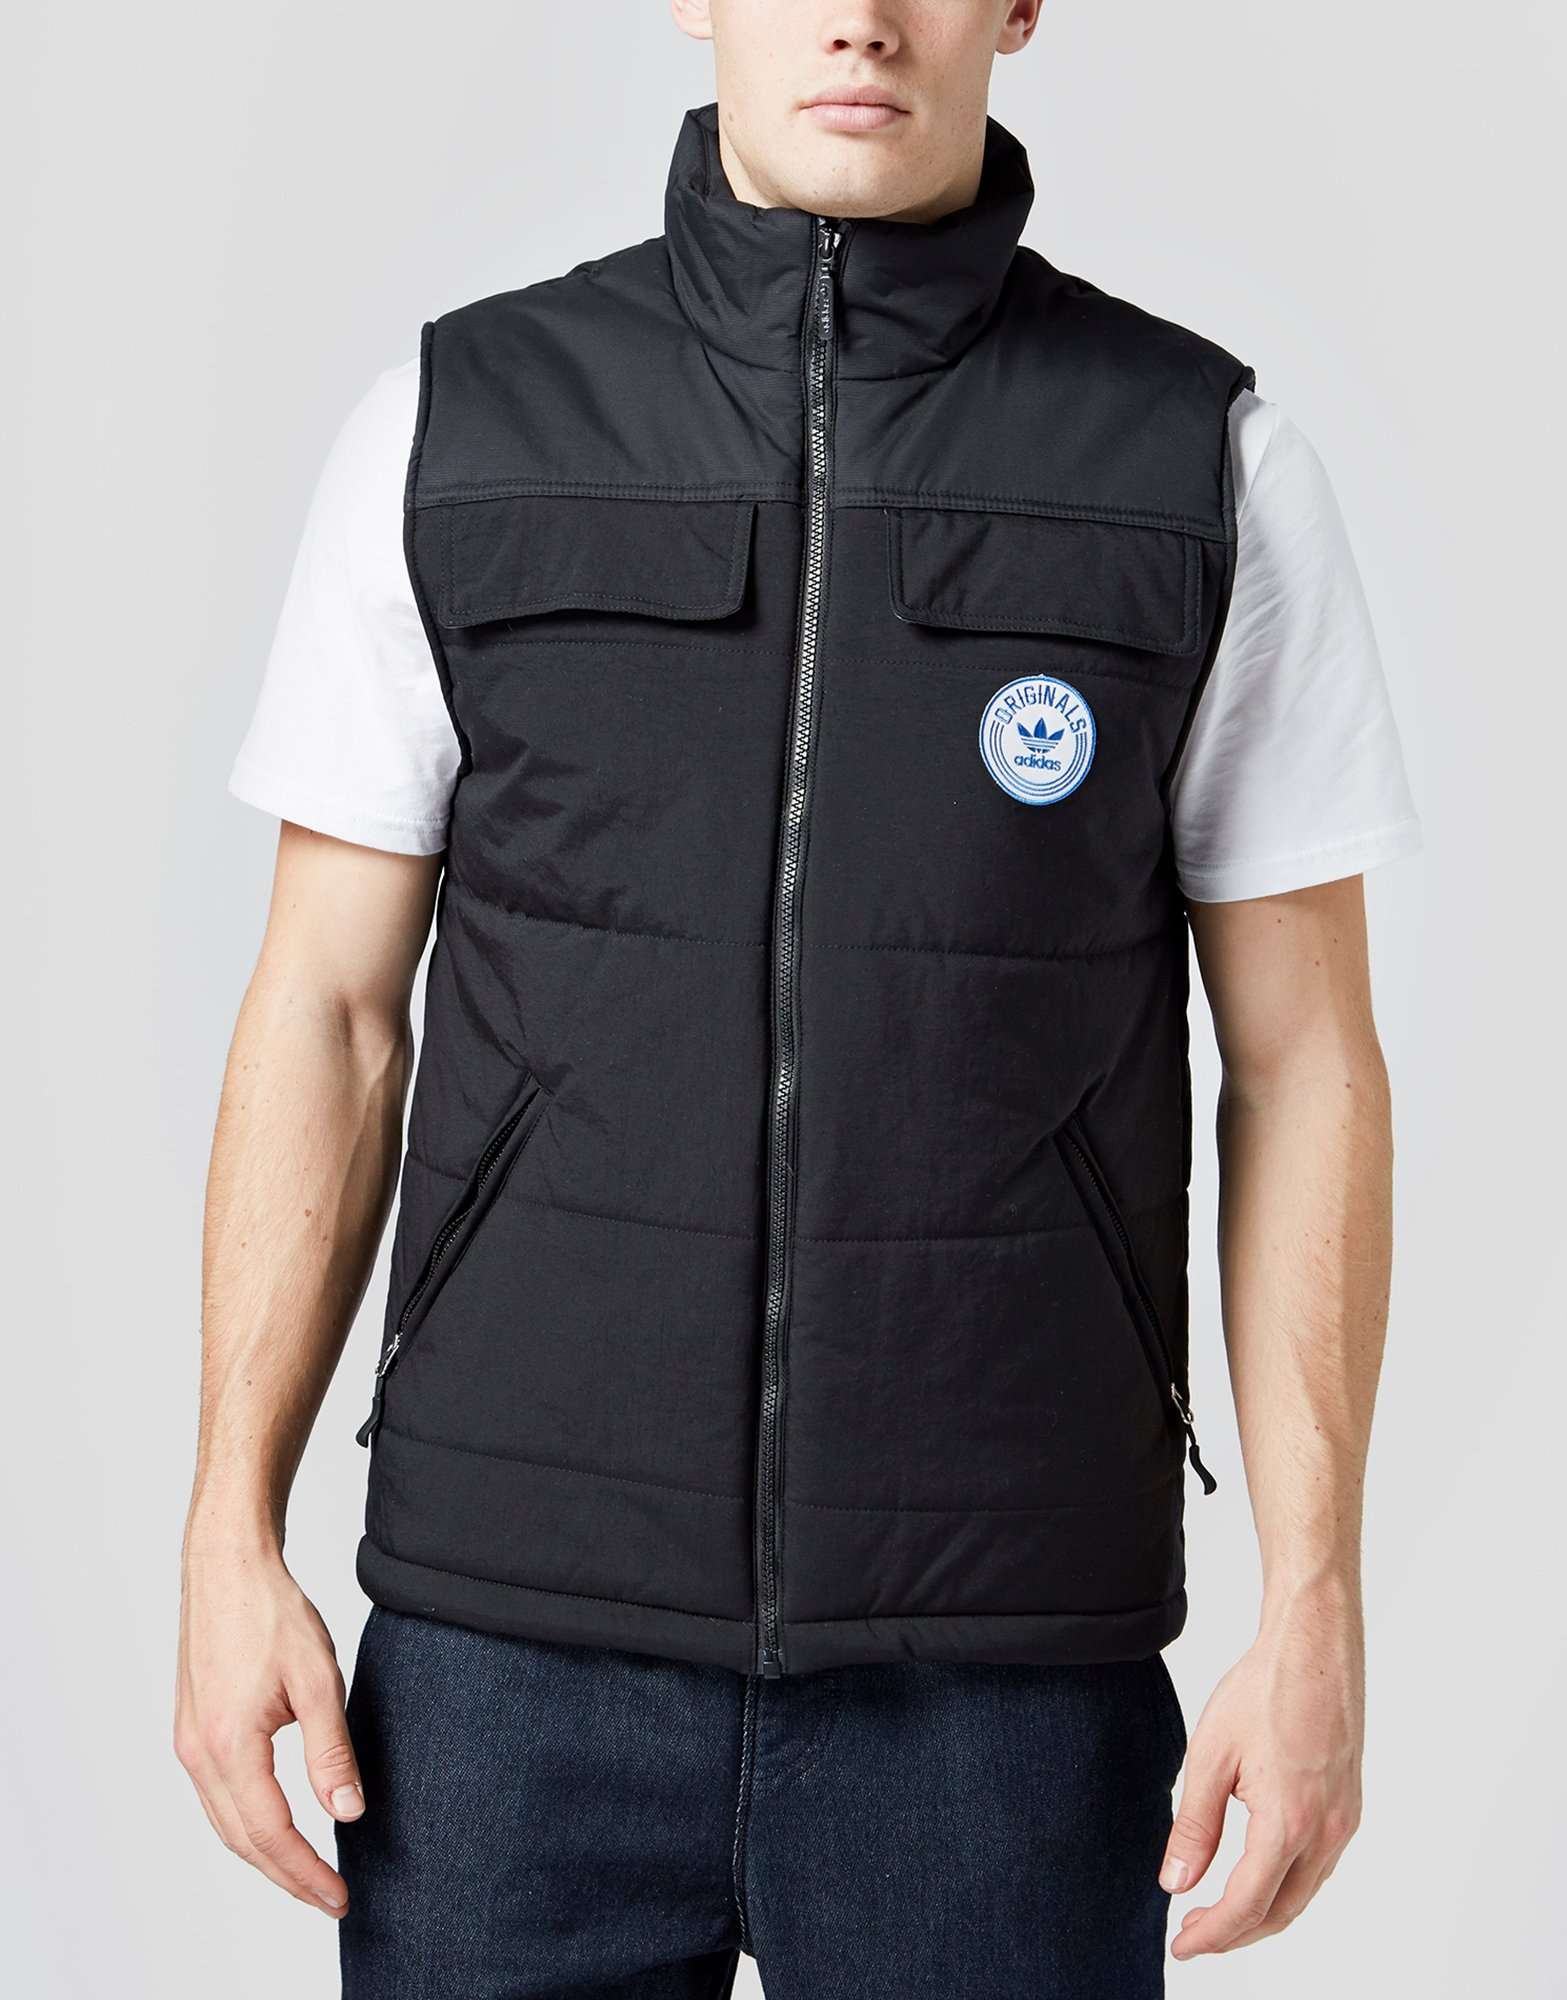 adidas Originals Praezision Gilet | scotts Menswear